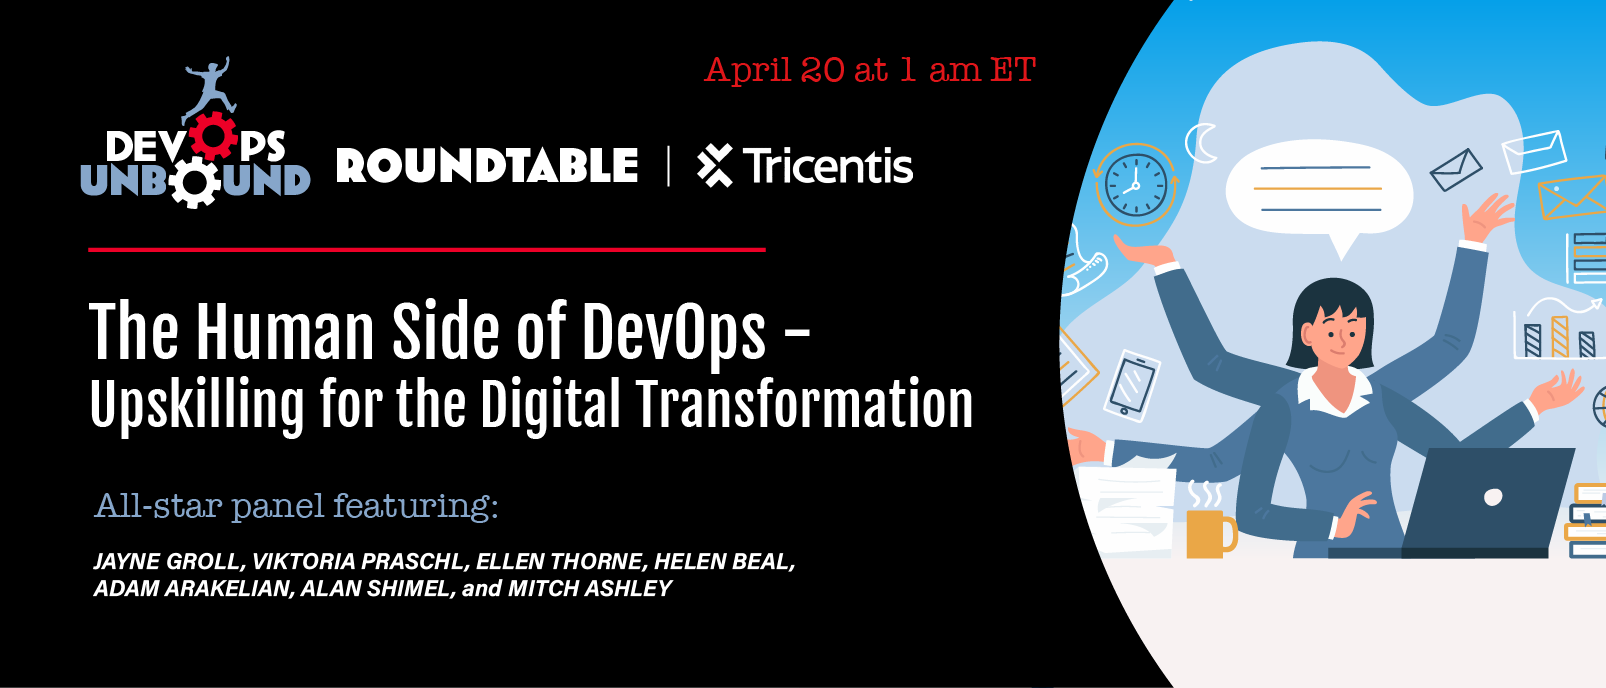 The Human Side of DevOps – Upskilling for the Digital Transformation